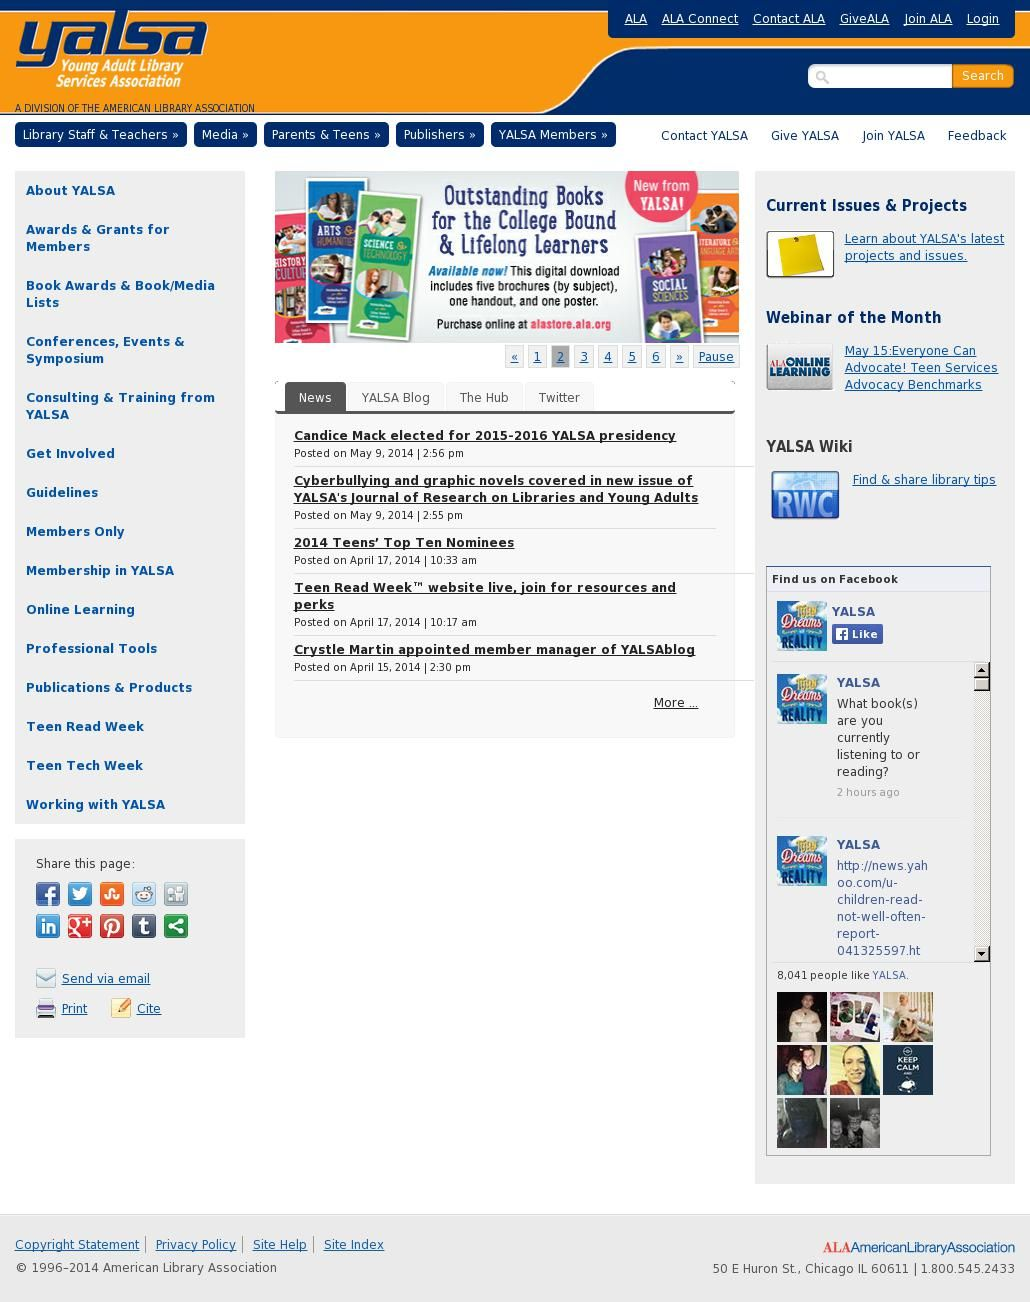 Young Adult Library Services Association (YALSA) webpage - The overlord of  professional resources for